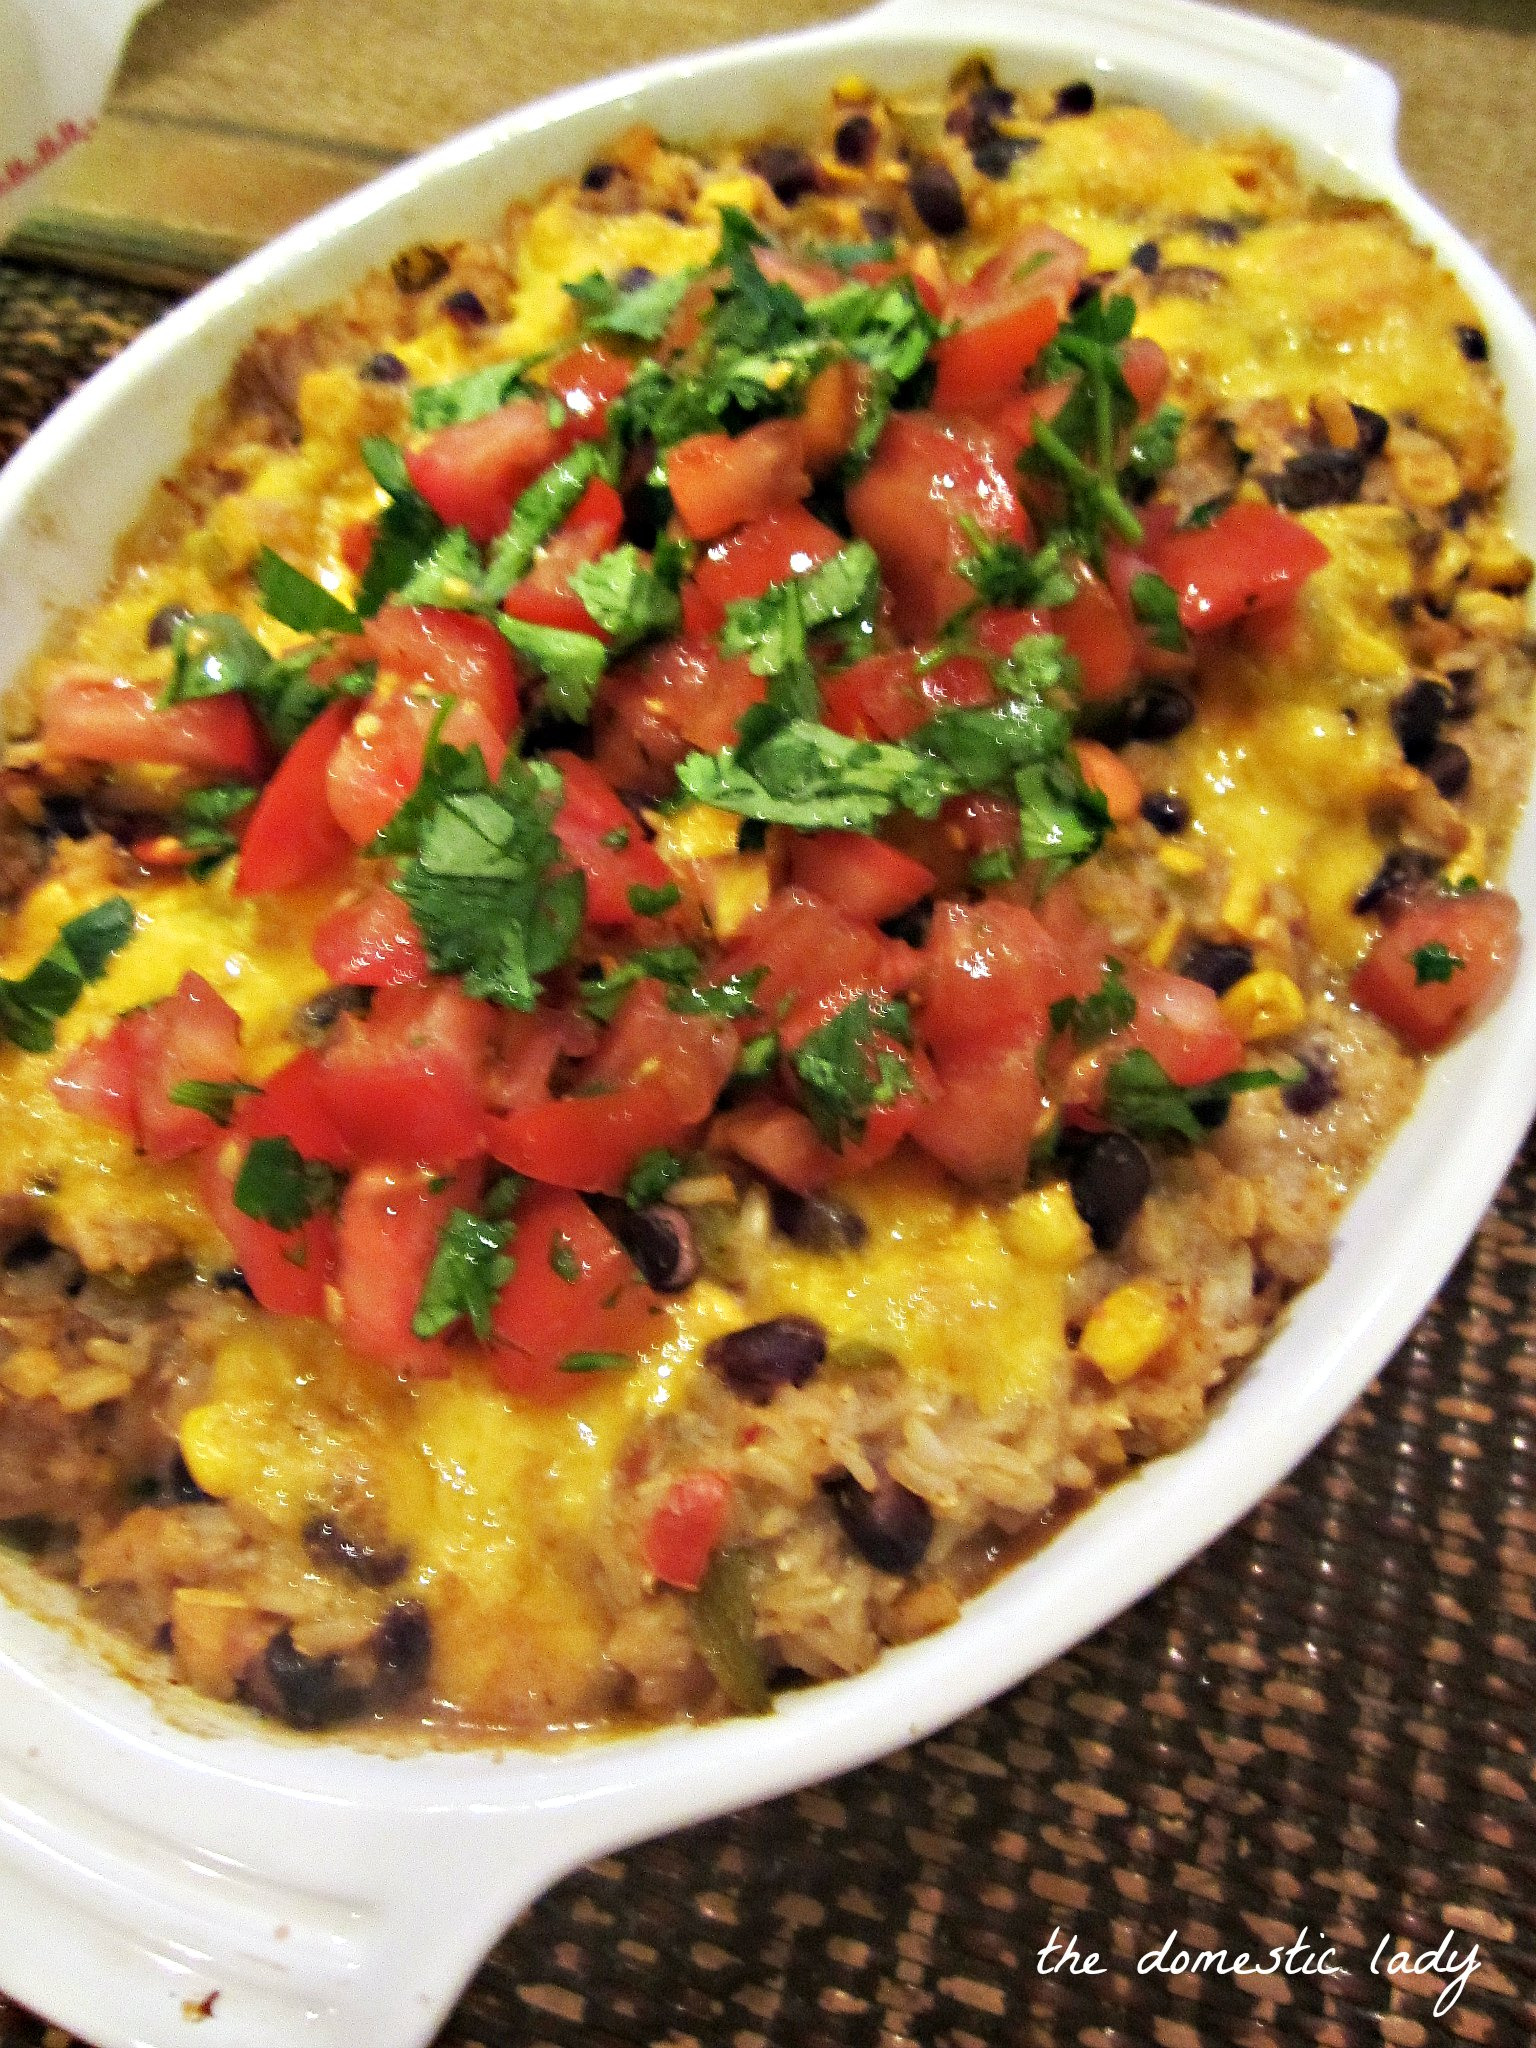 casserole mexican rice casserole affair with mexican food for mexican ...